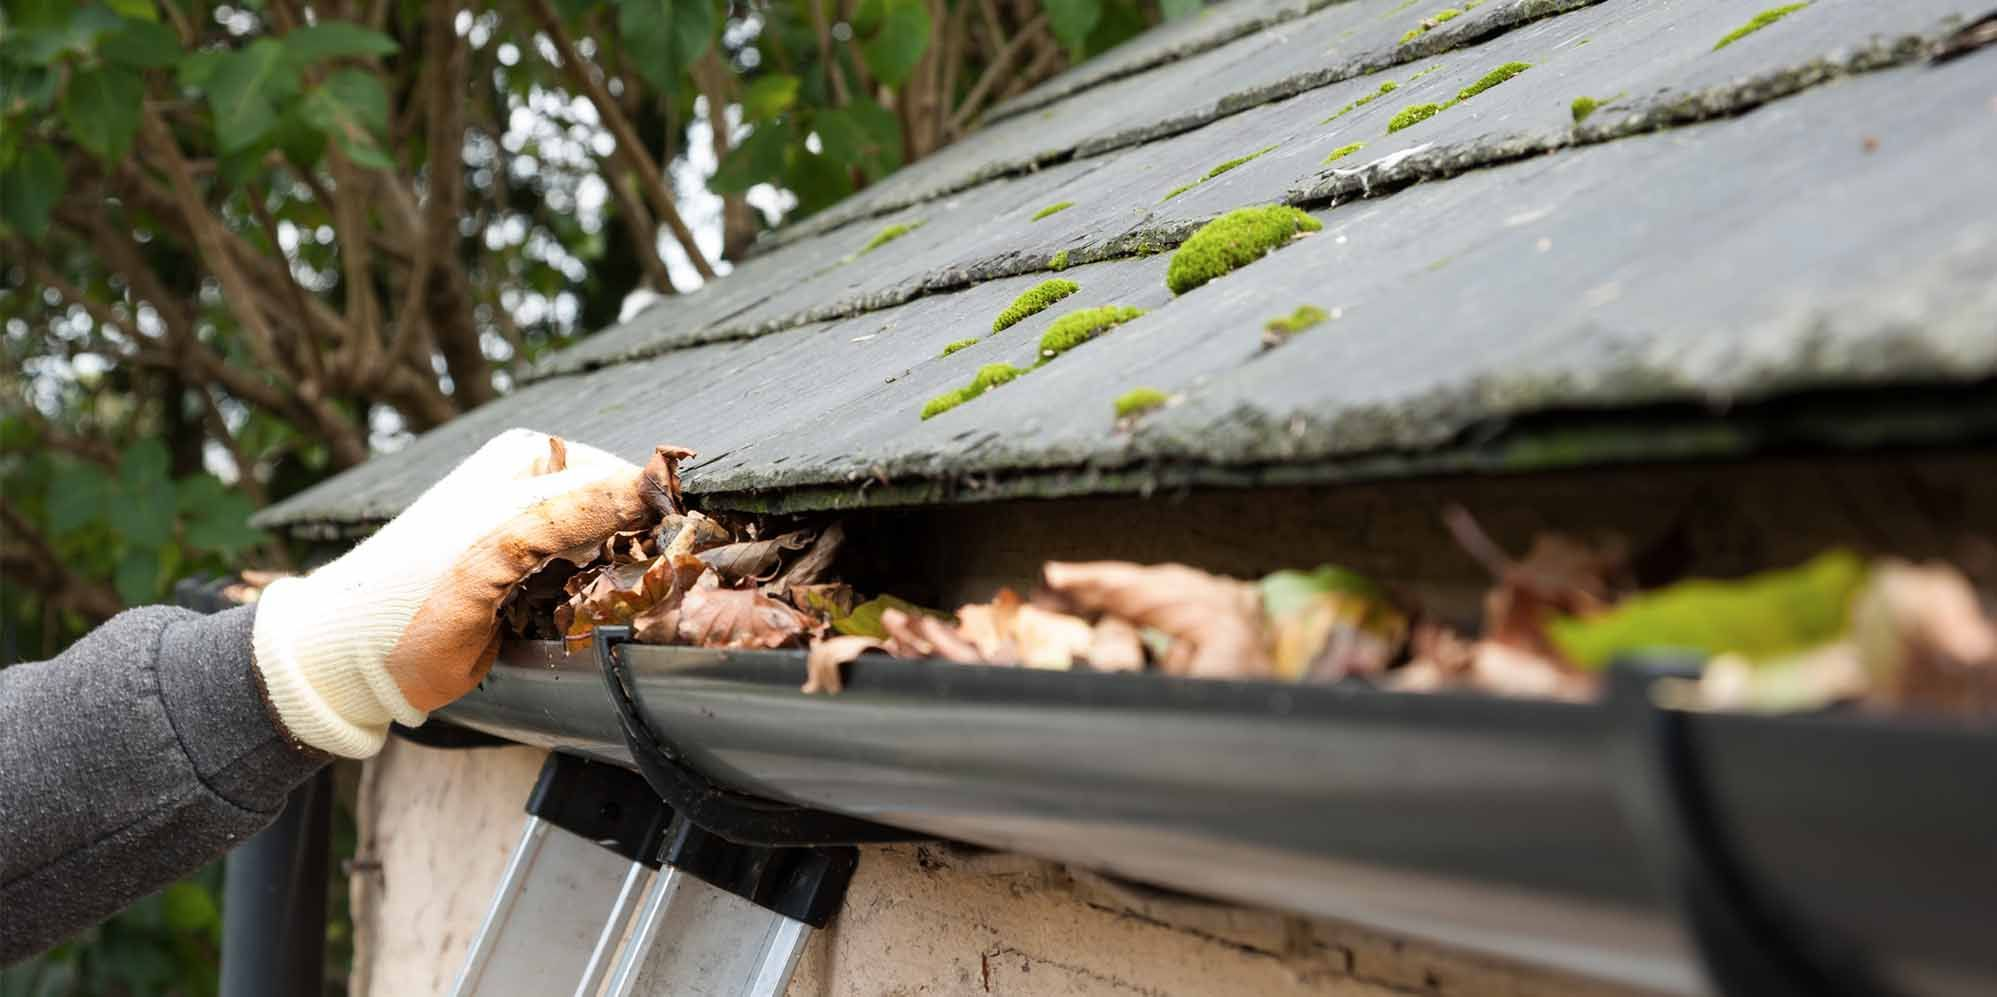 Dumping And Leaking Drains Can Harm Coatings And Foundations Which Can Price Hundreds Of Dollars For Repairs You Can Use Cha Cleaning Gutters Gutter Cleaning